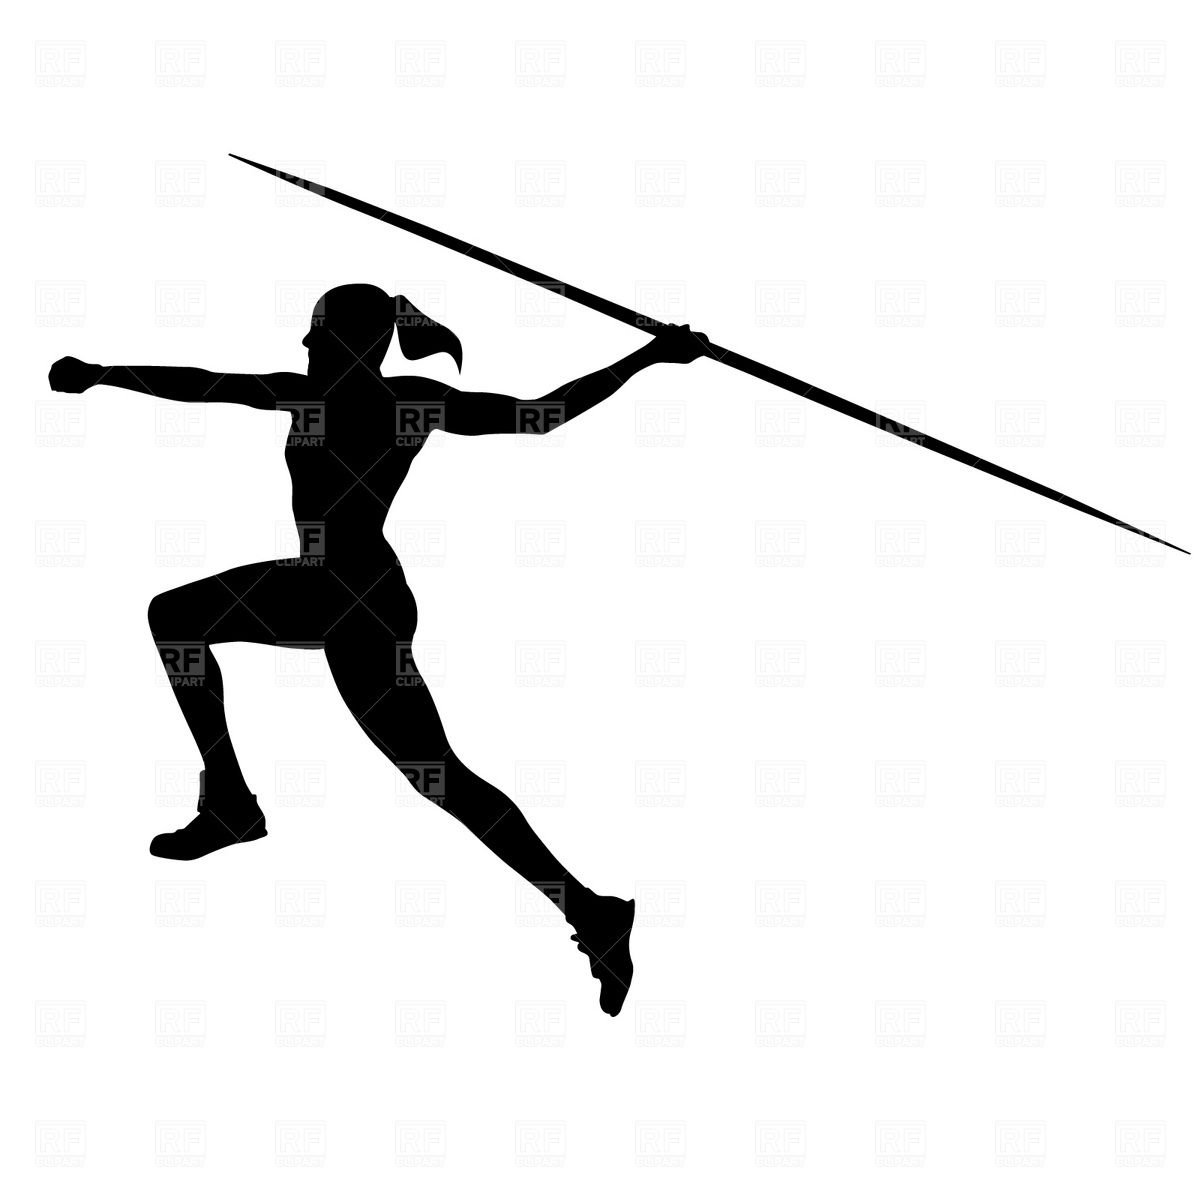 small resolution of woman throwing javelin clipart catalog sport and leisure women s javelin download